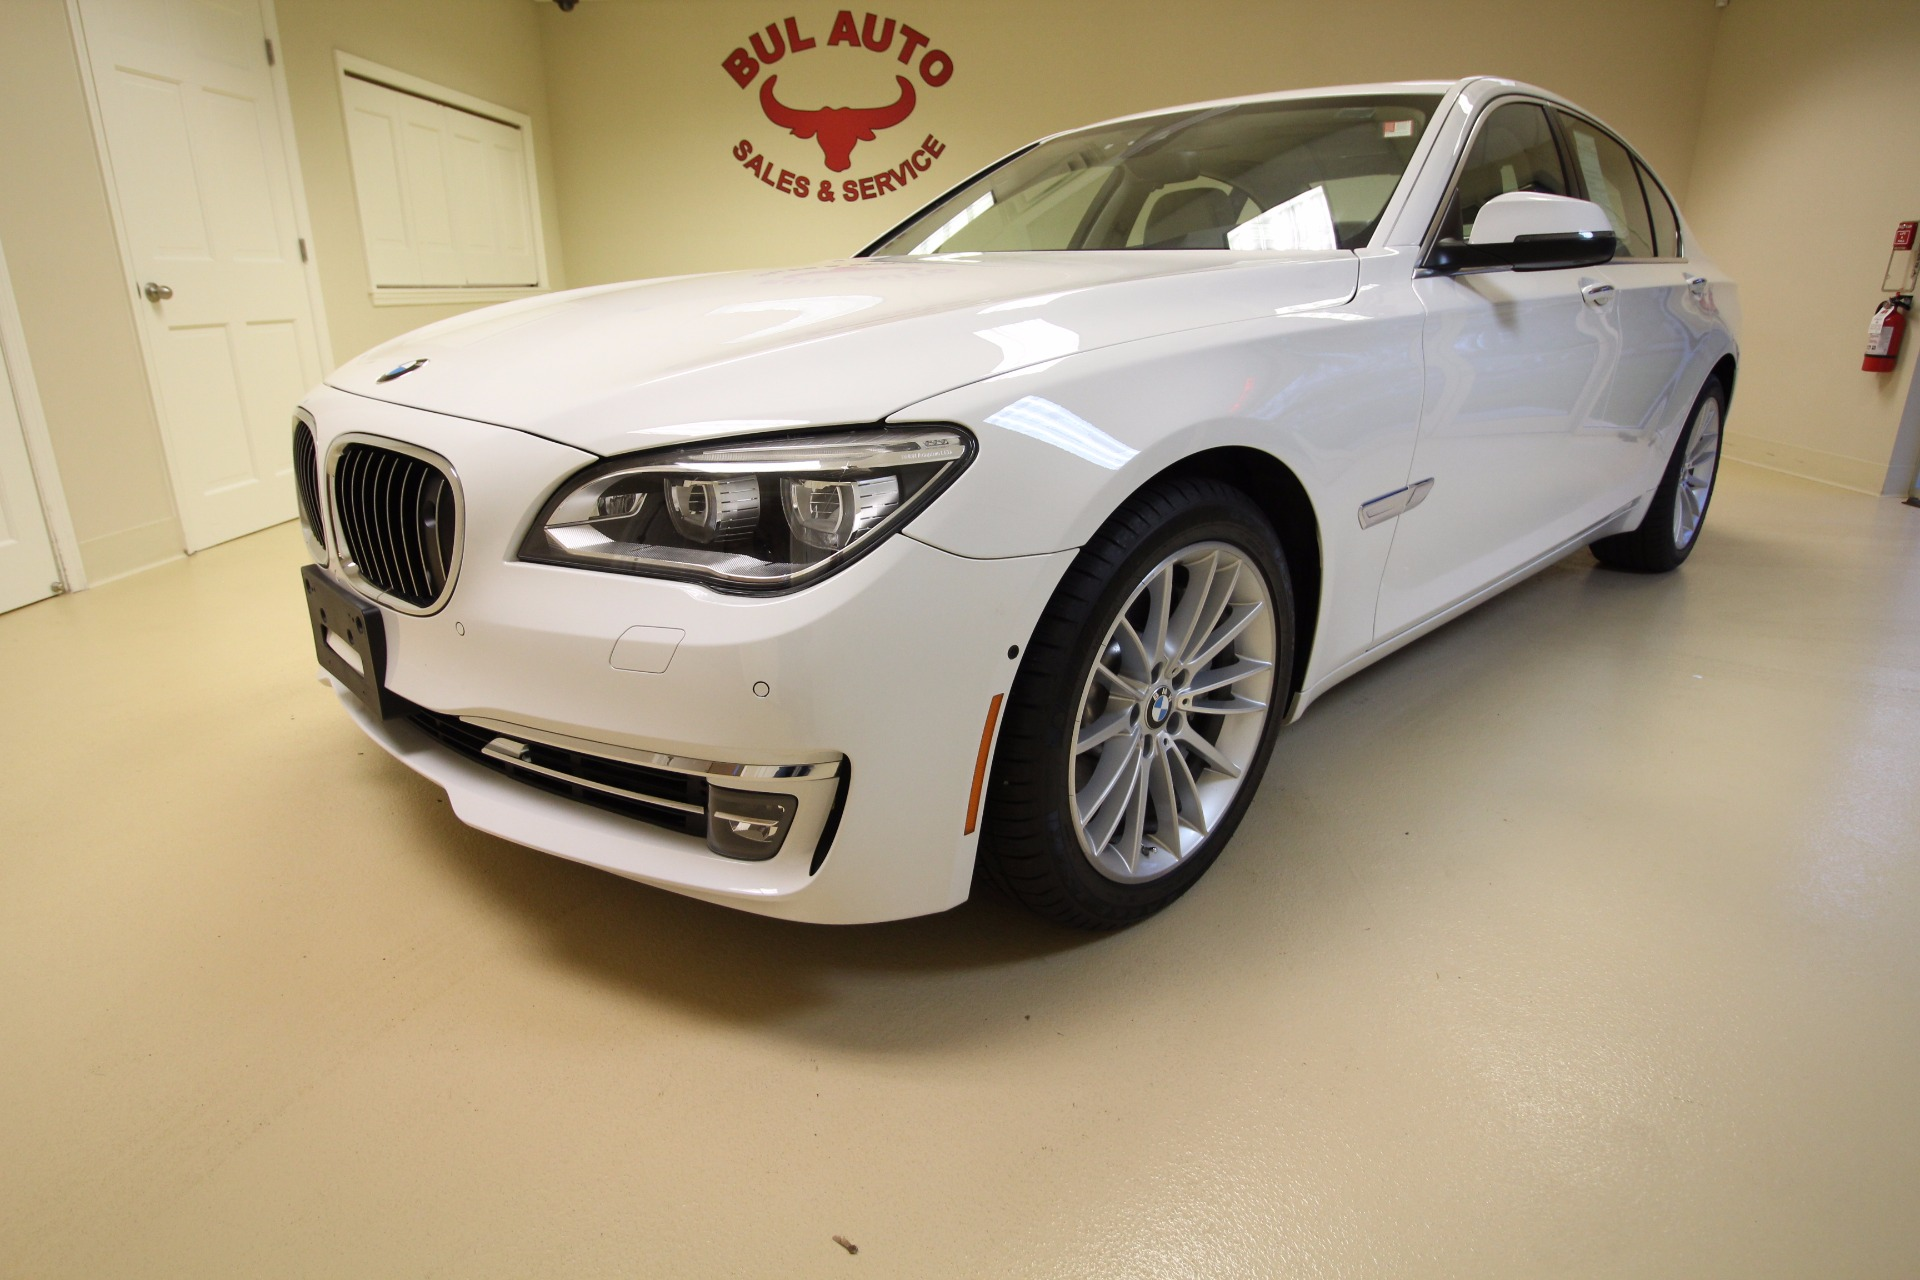 2014 bmw 7 series 750i xdrive stock 17221 for sale near albany ny ny bmw dealer for sale in. Black Bedroom Furniture Sets. Home Design Ideas